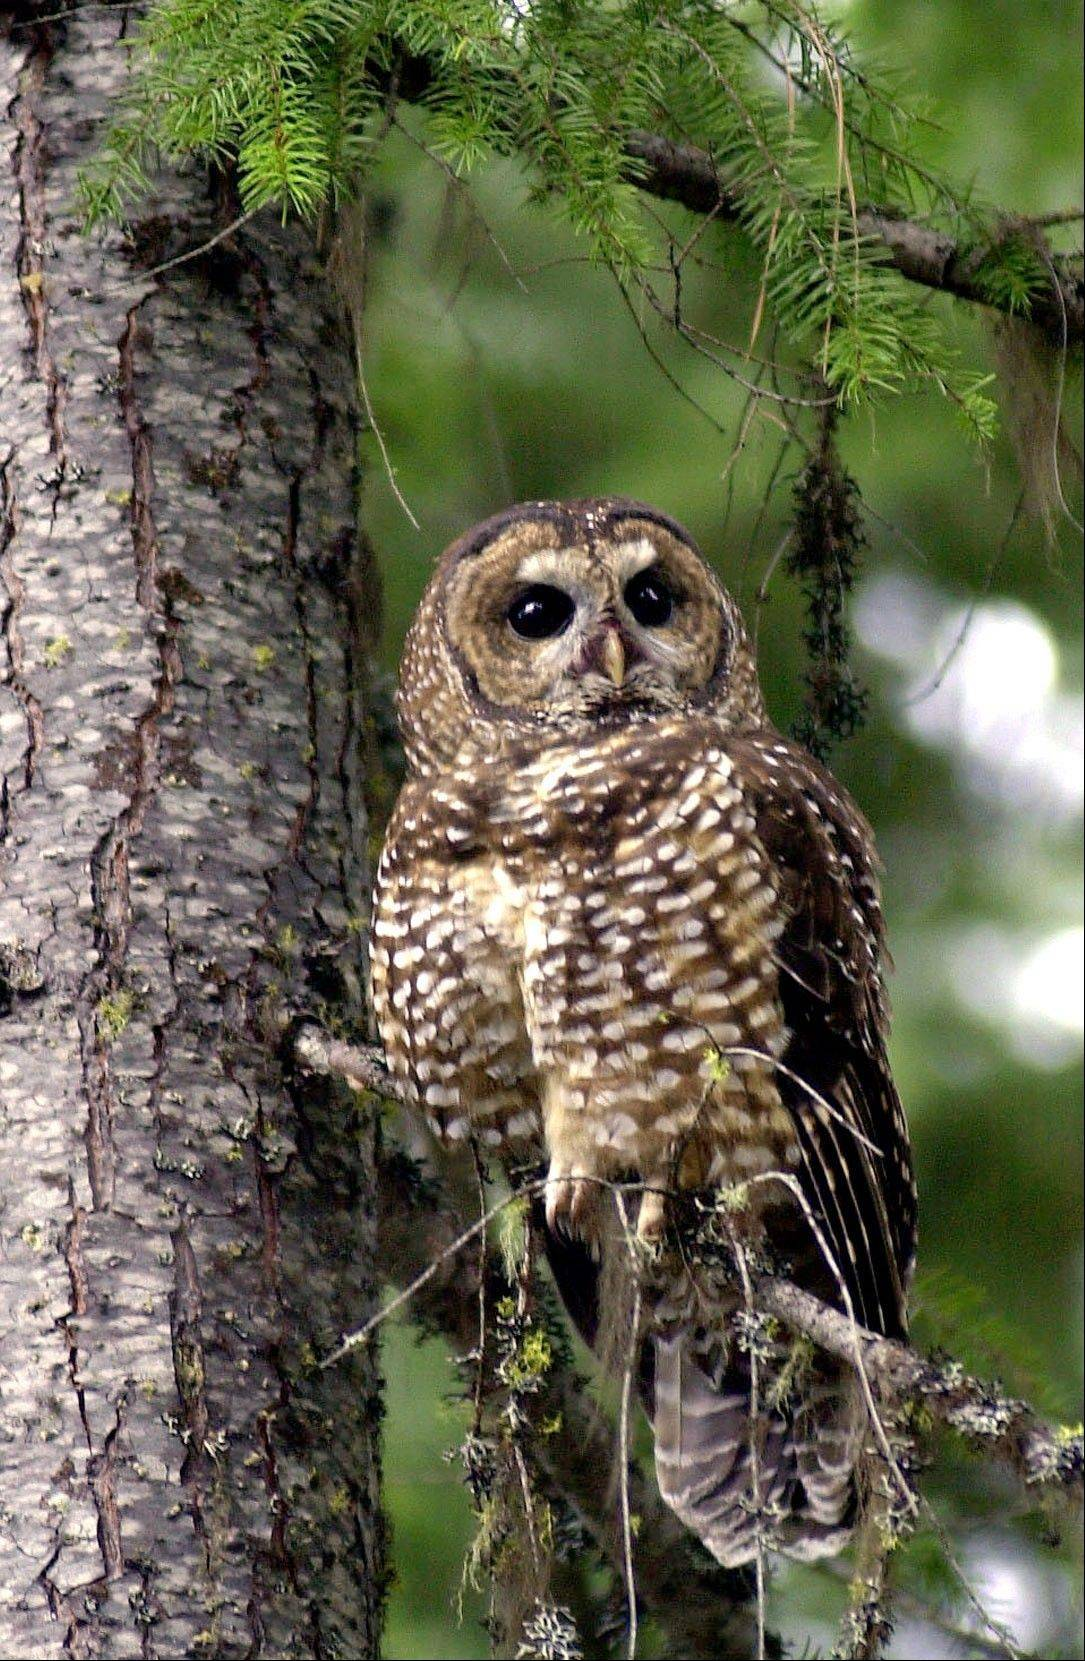 The Obama Administrationís overhaul of the strategy for saving northern spotted owls has been completed, and it nearly doubles the amount of forest designated as habitat critical to the owlís survival four years ago by the Bush administration.